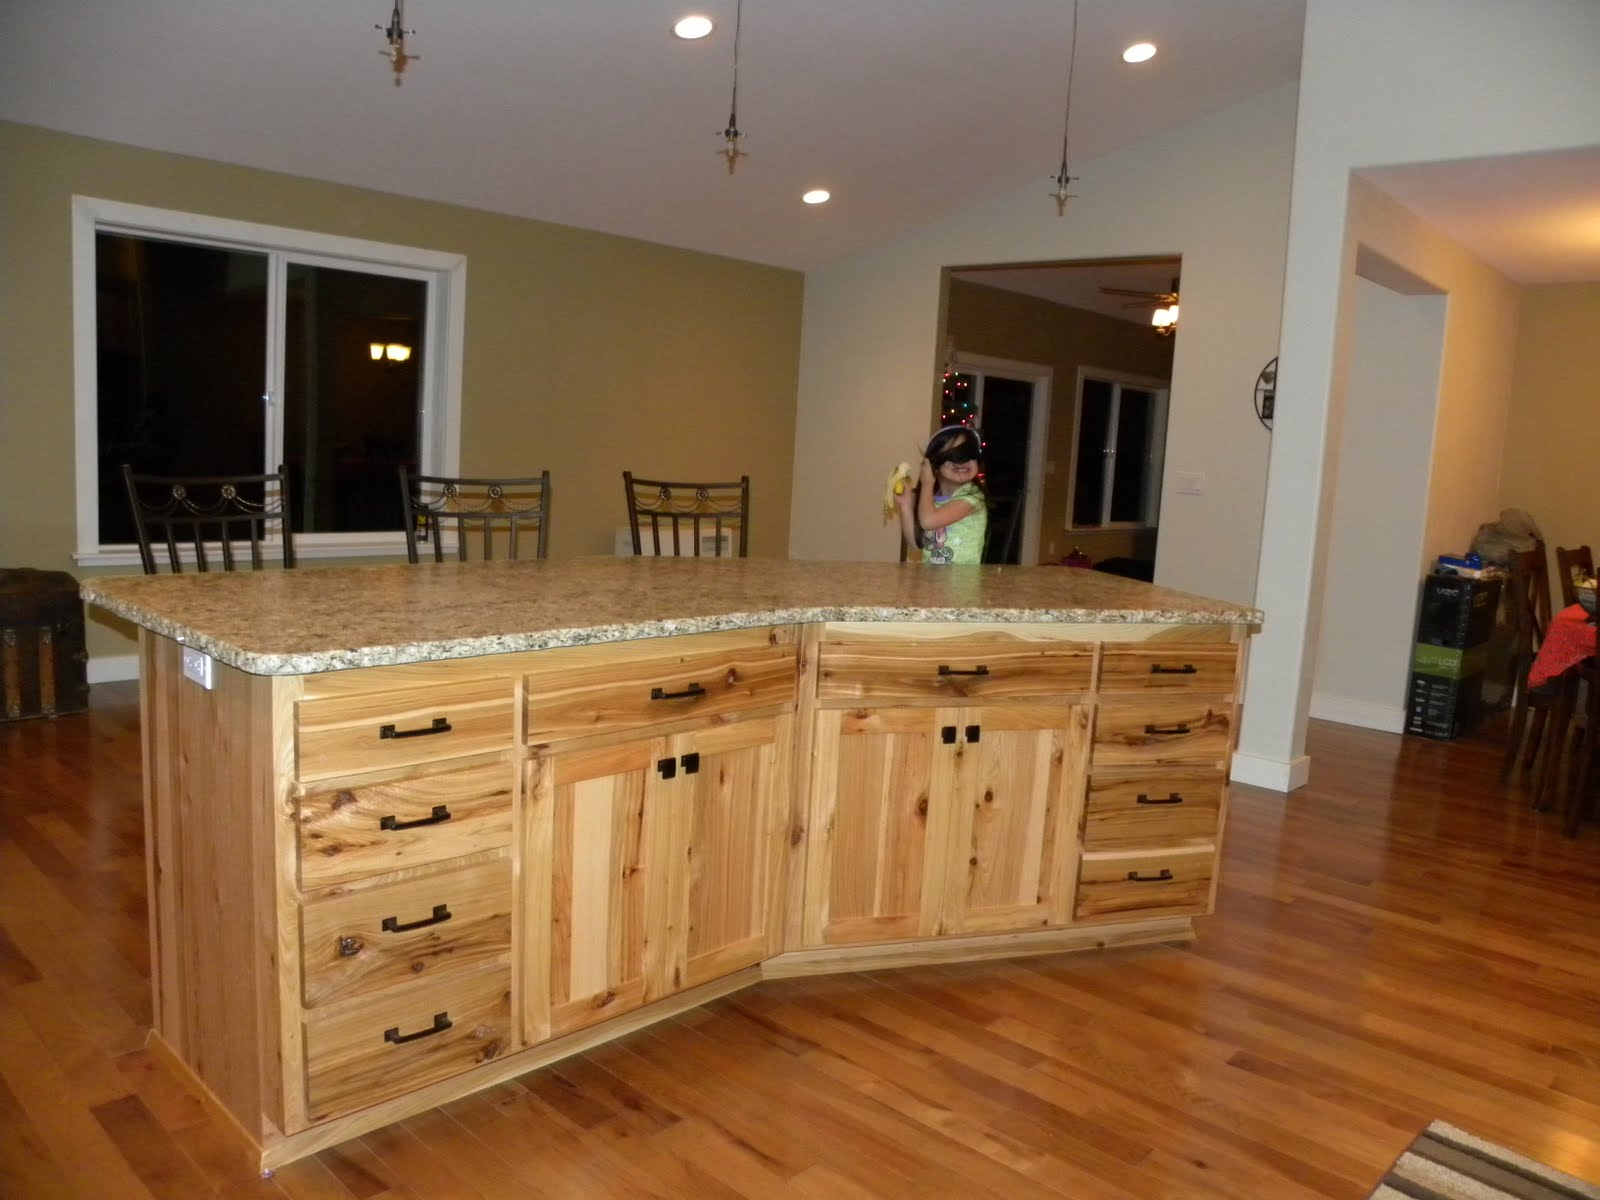 hickory shaker style kitchen cabinets black and white accessories scott river custom rustic